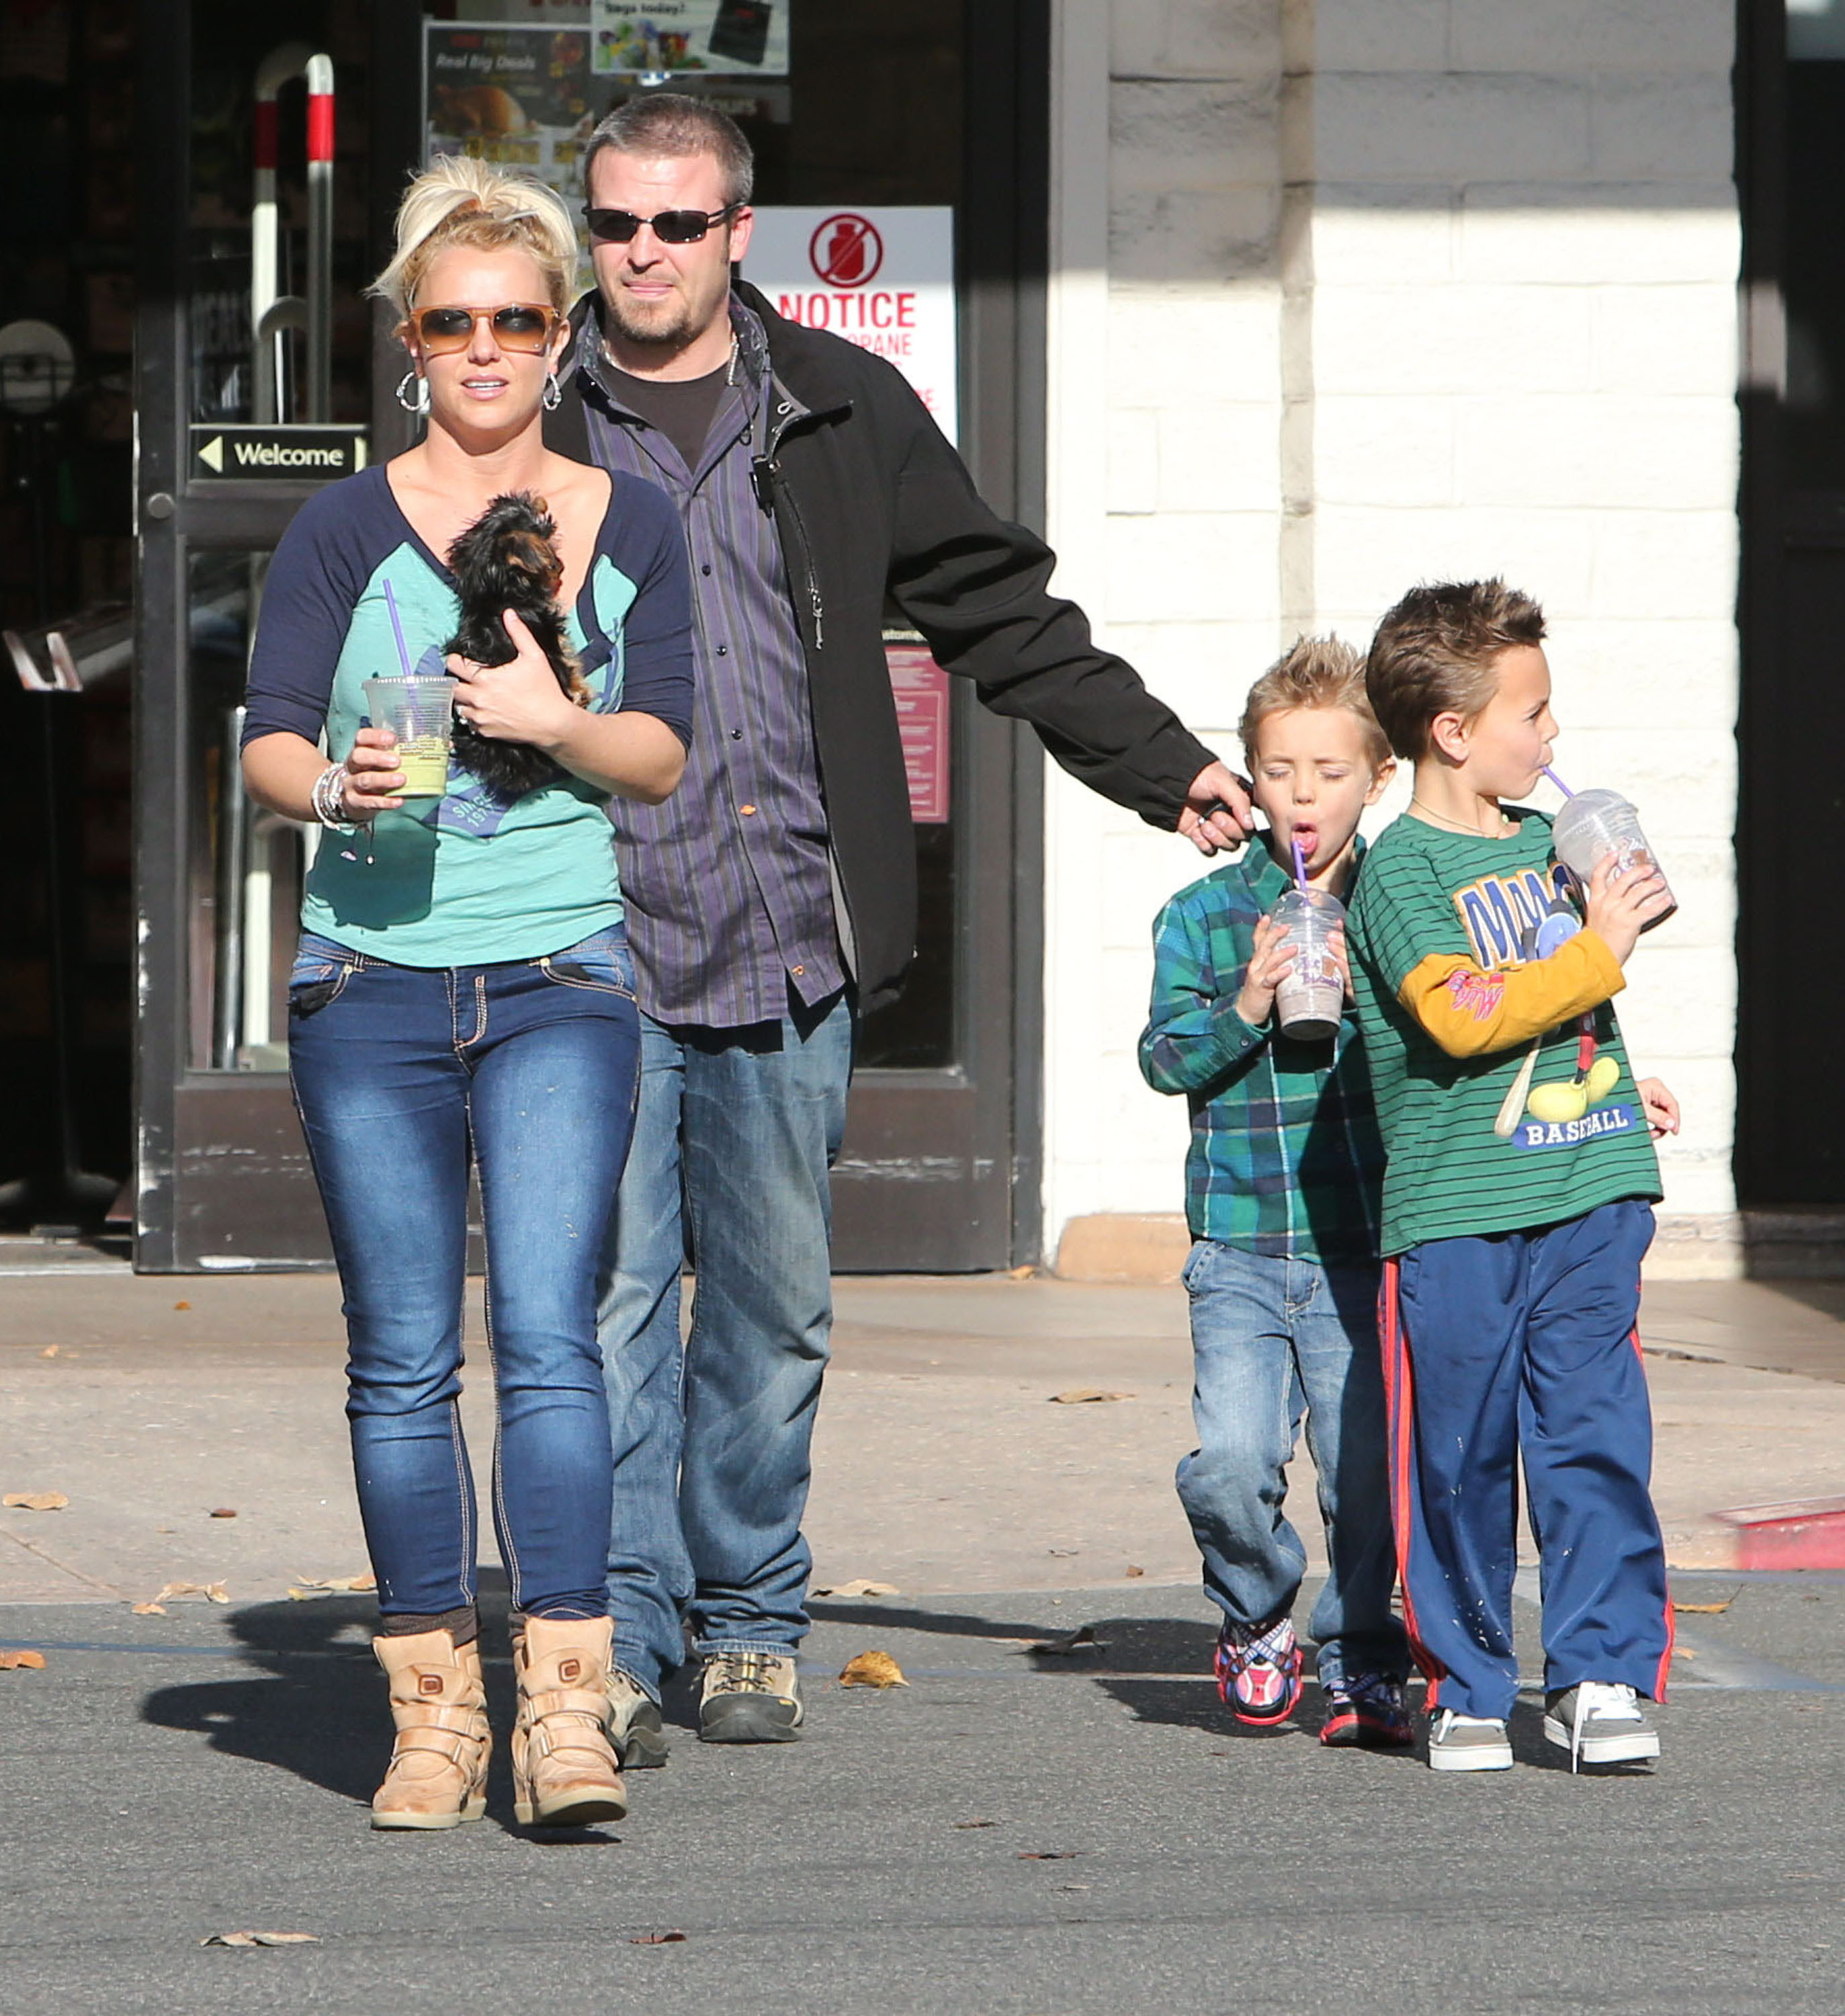 Watch Britney spears can see her kids some more again video